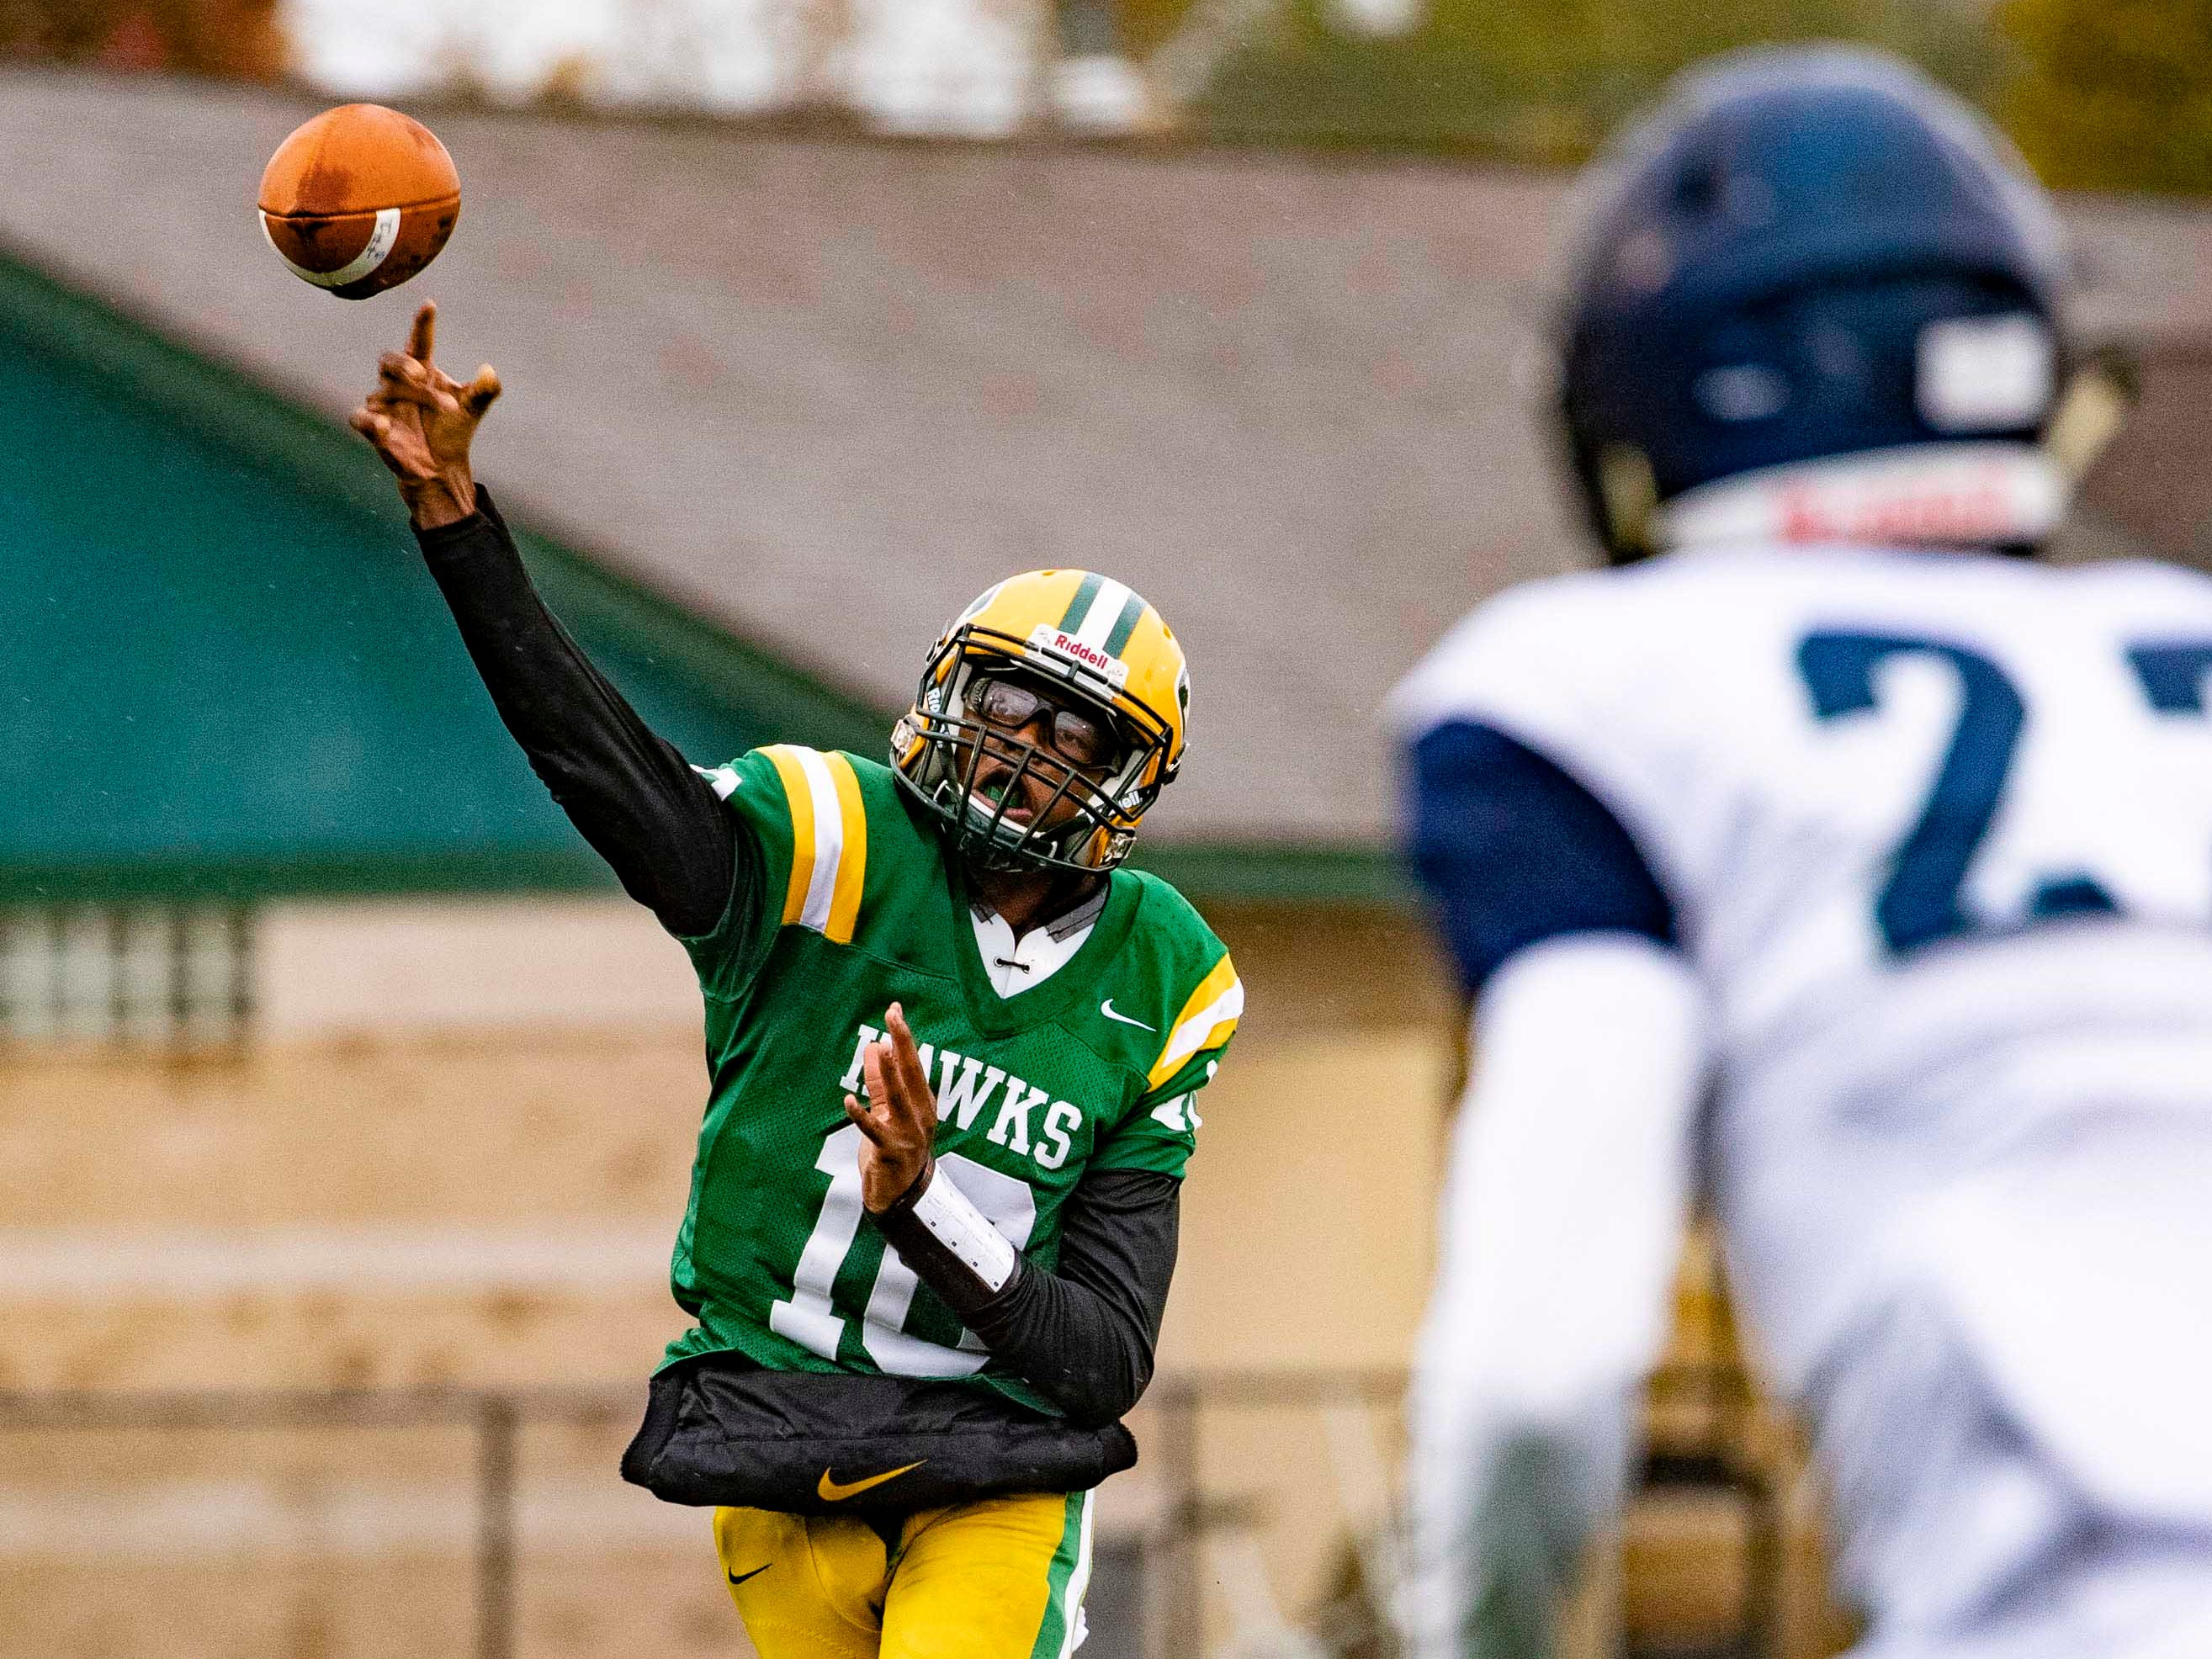 Keel Watson (10) of Farmington Hills Harrison Hawks throws the football against Cranbrook Kingswood in the first half.